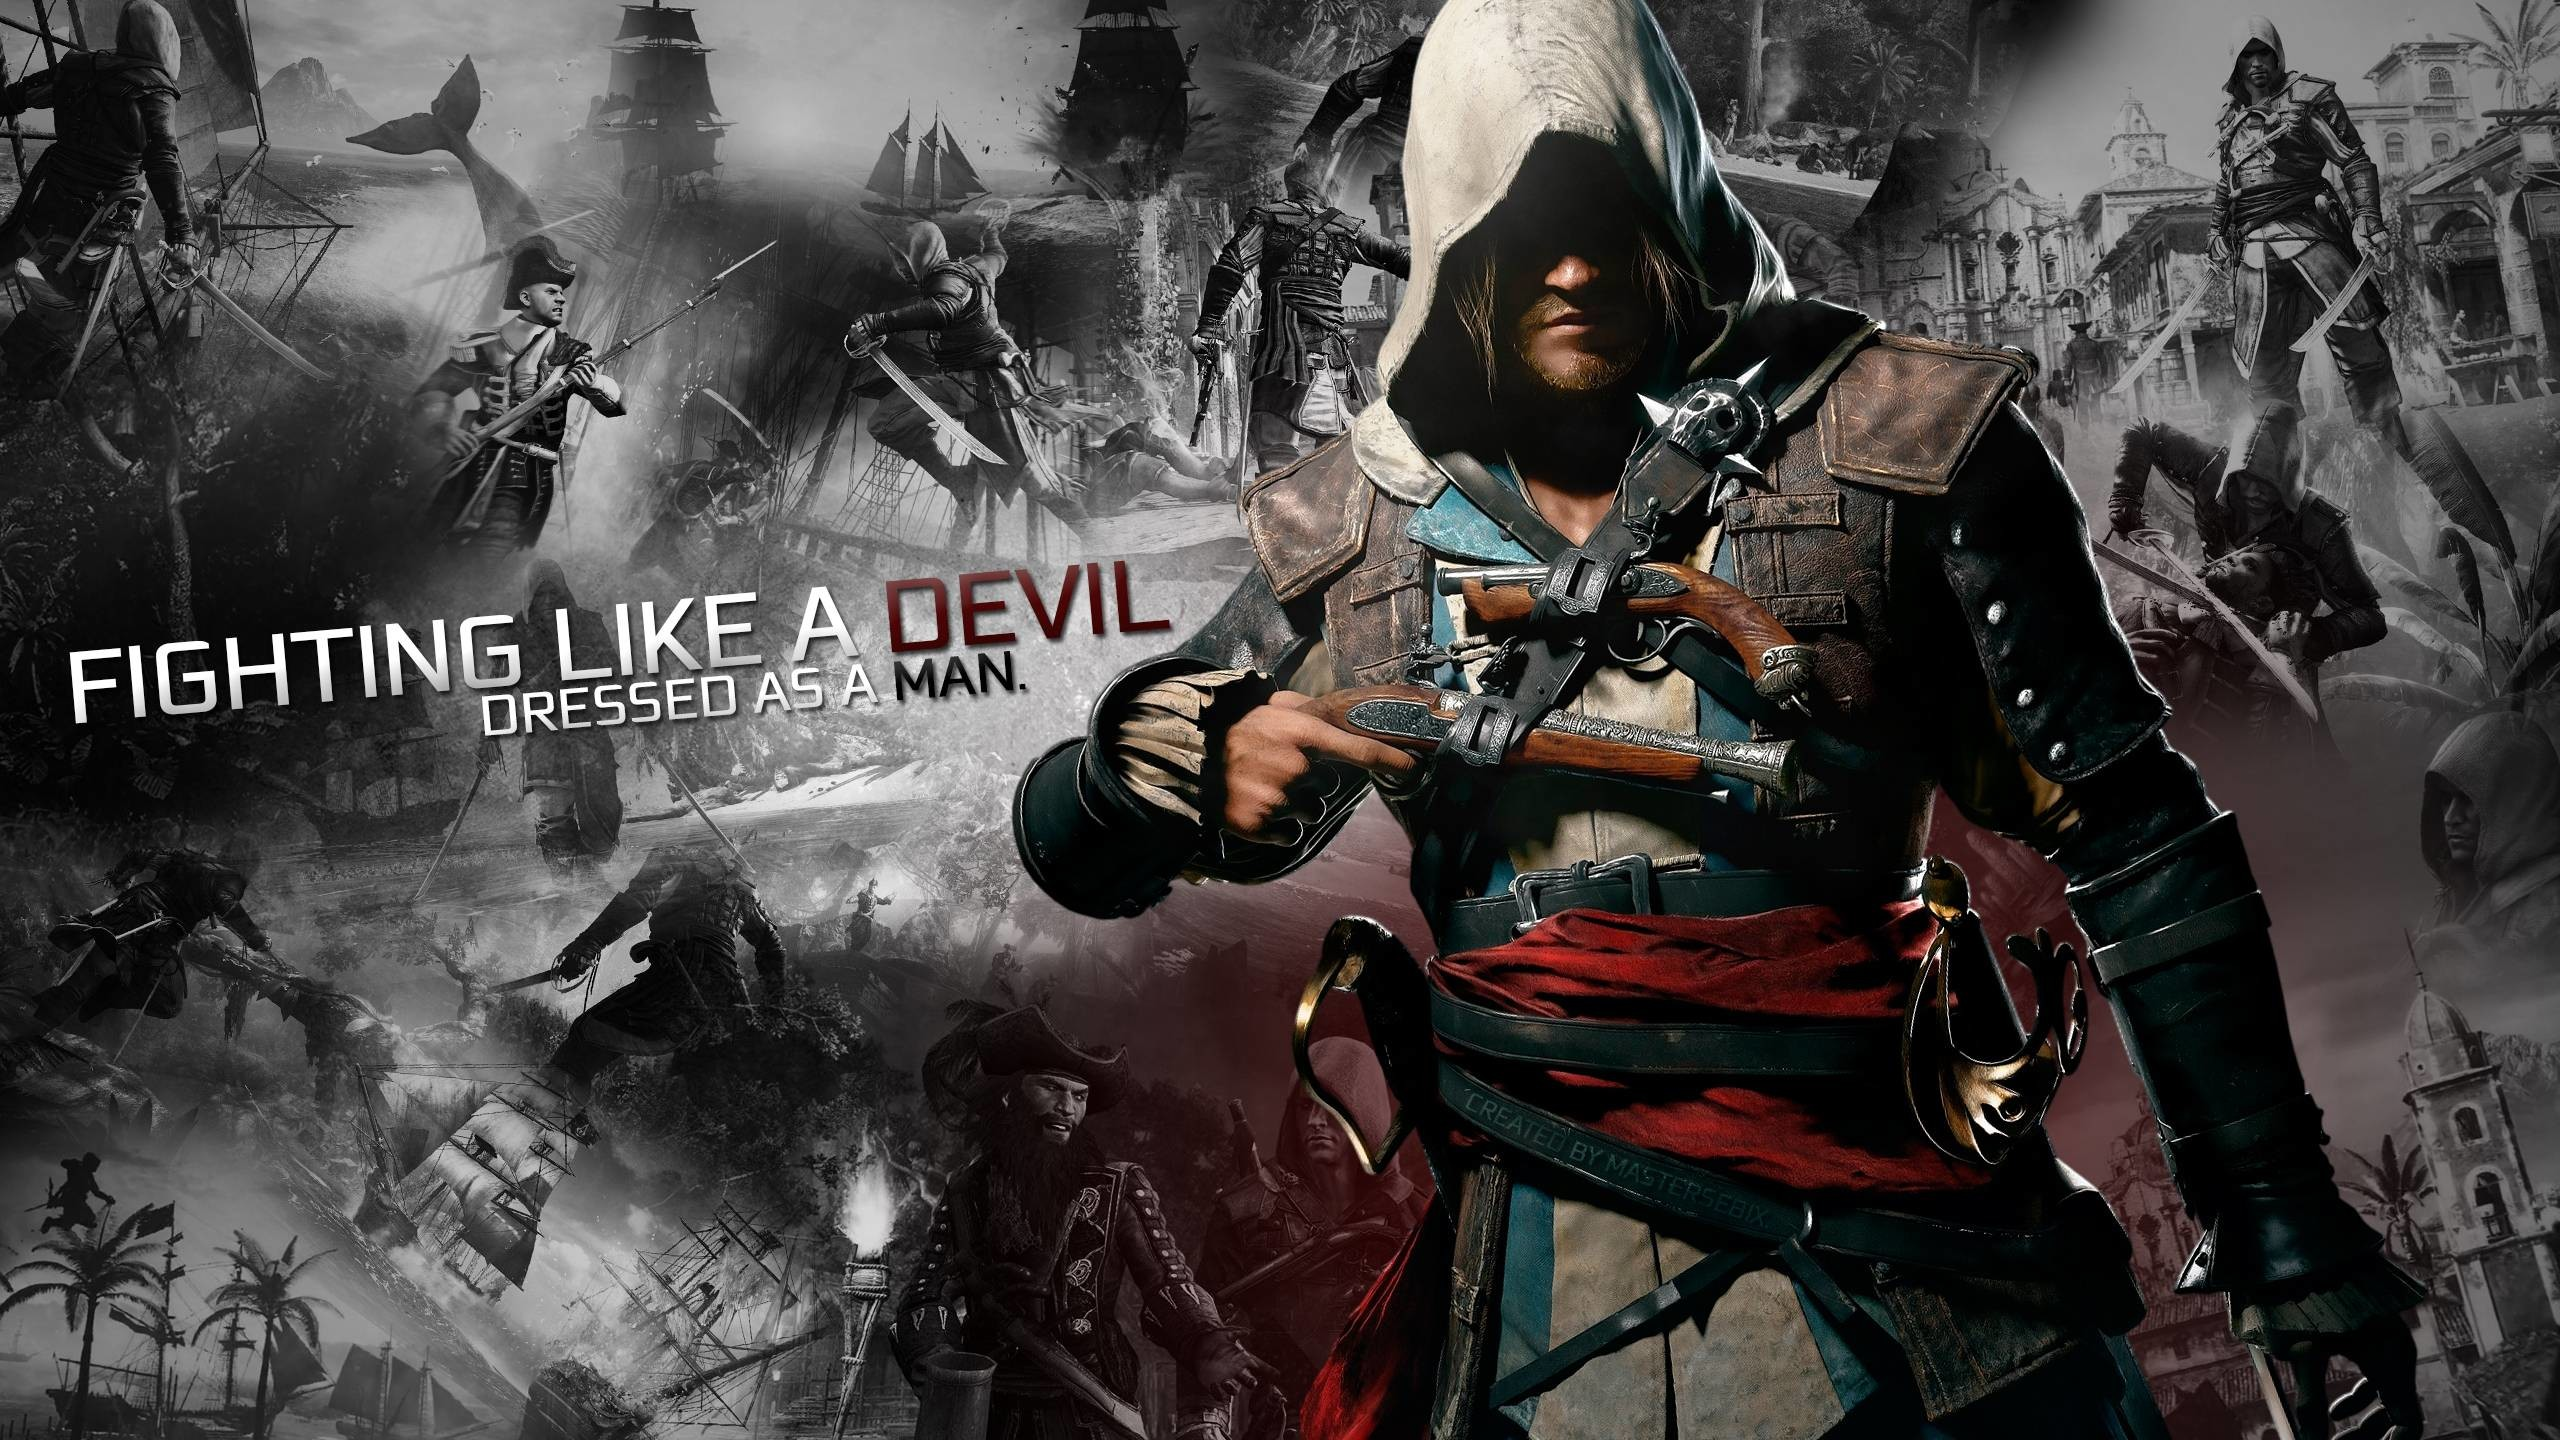 Assassins creed all assassins wallpaper 88 images 1920x1080 assassins creed assassins wallpaper by trinitynexus384 assassins creed assassins wallpaper by trinitynexus384 voltagebd Gallery